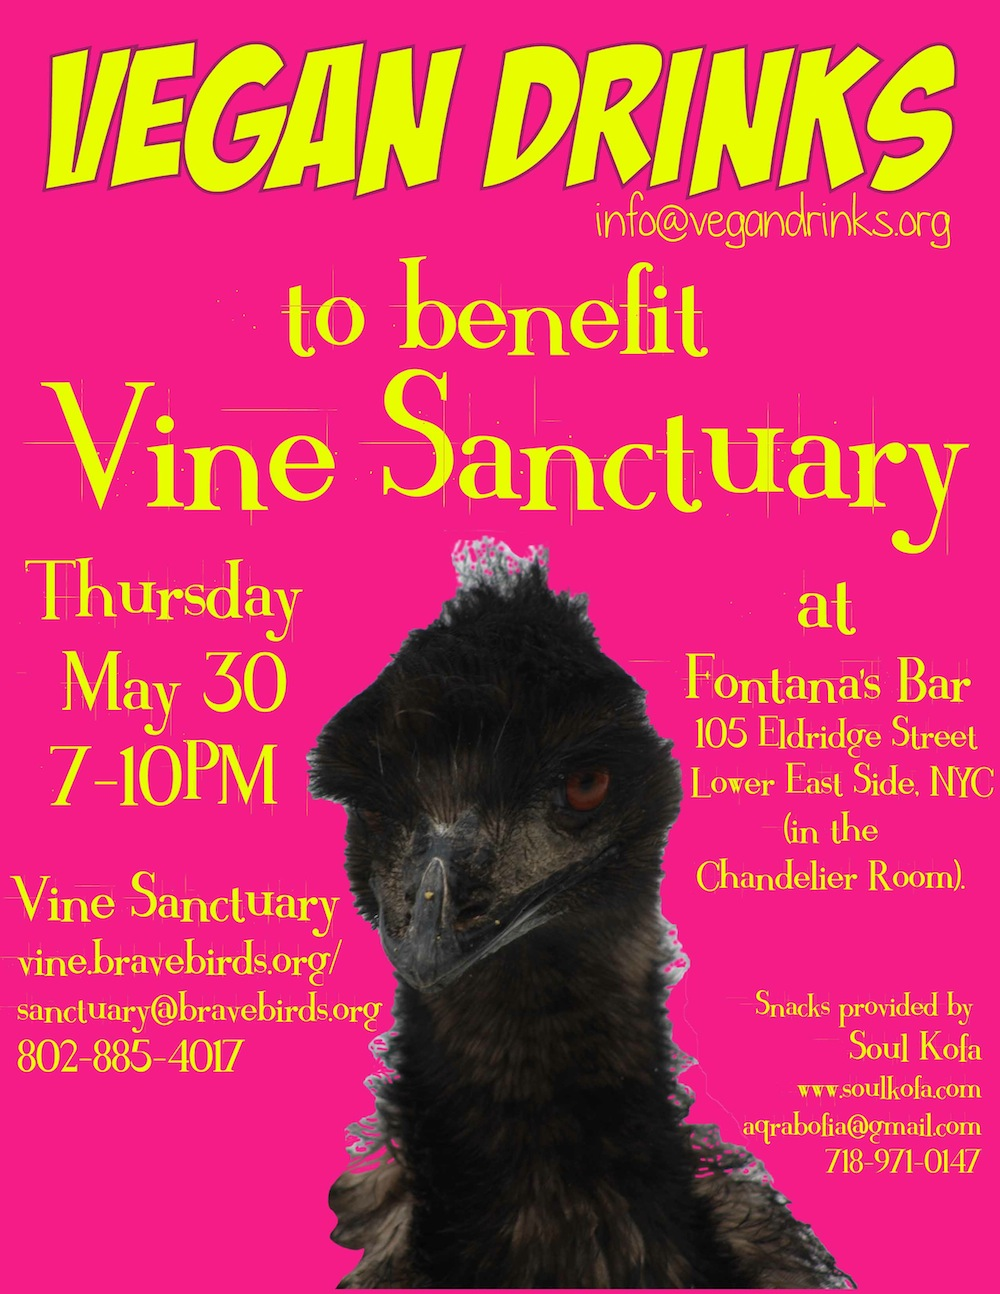 ecc vine vegan drinks flyer.jpg